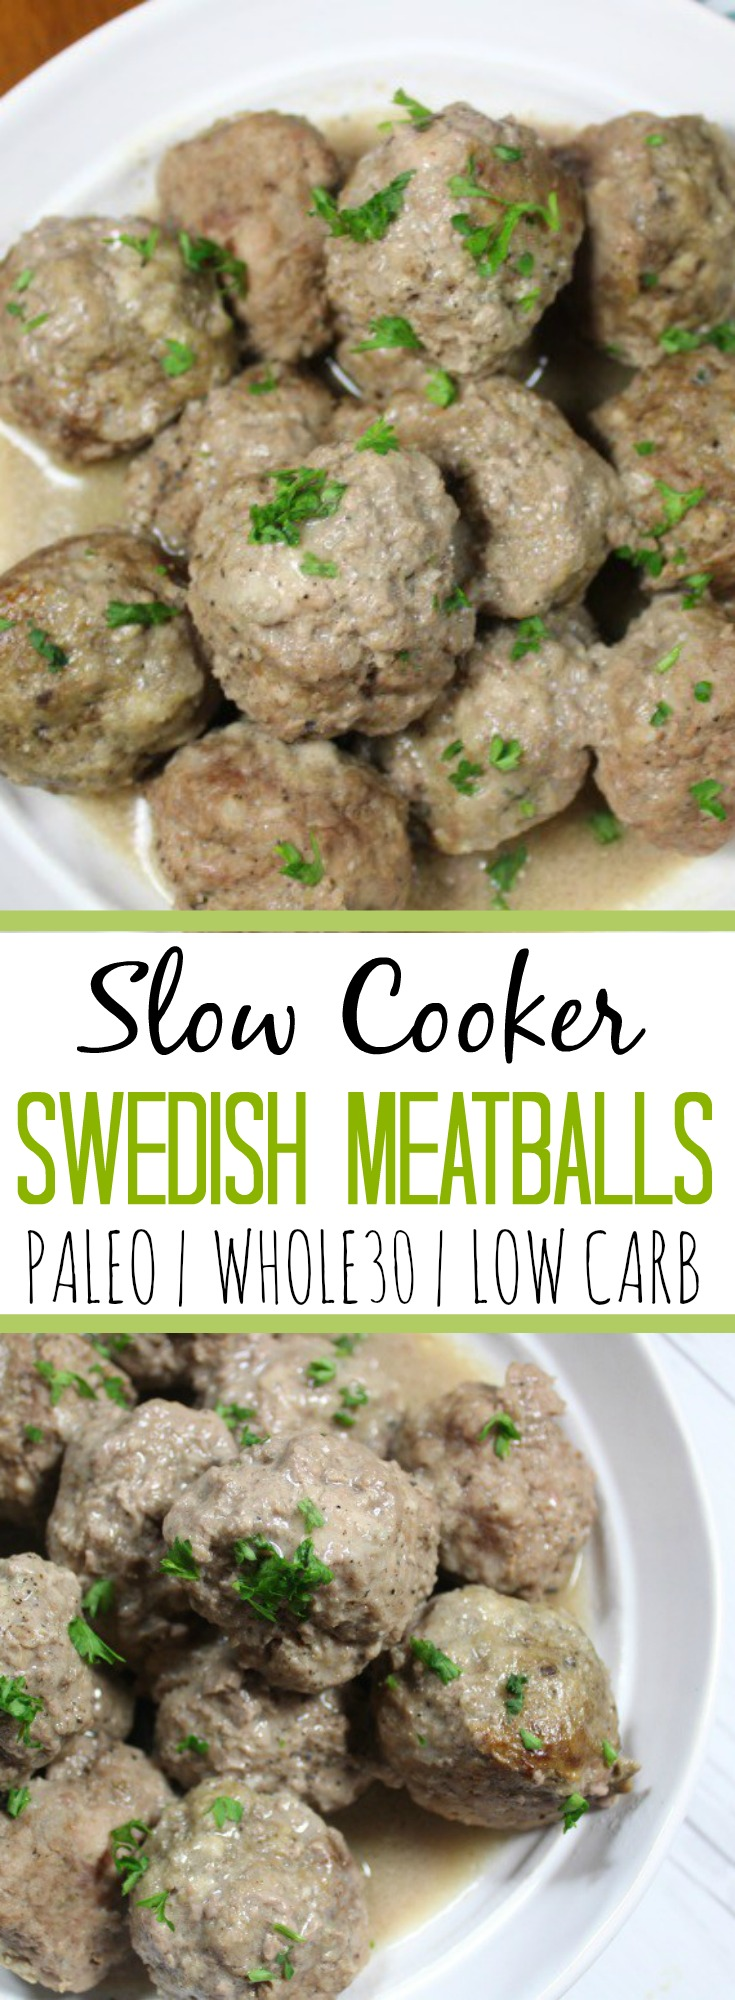 Healthy Swedish meatballs made in the slow cooker! #paleoslowcooker #whole30slowcooker #paleomeatballs #lowcarbmeatballs #whole30beef